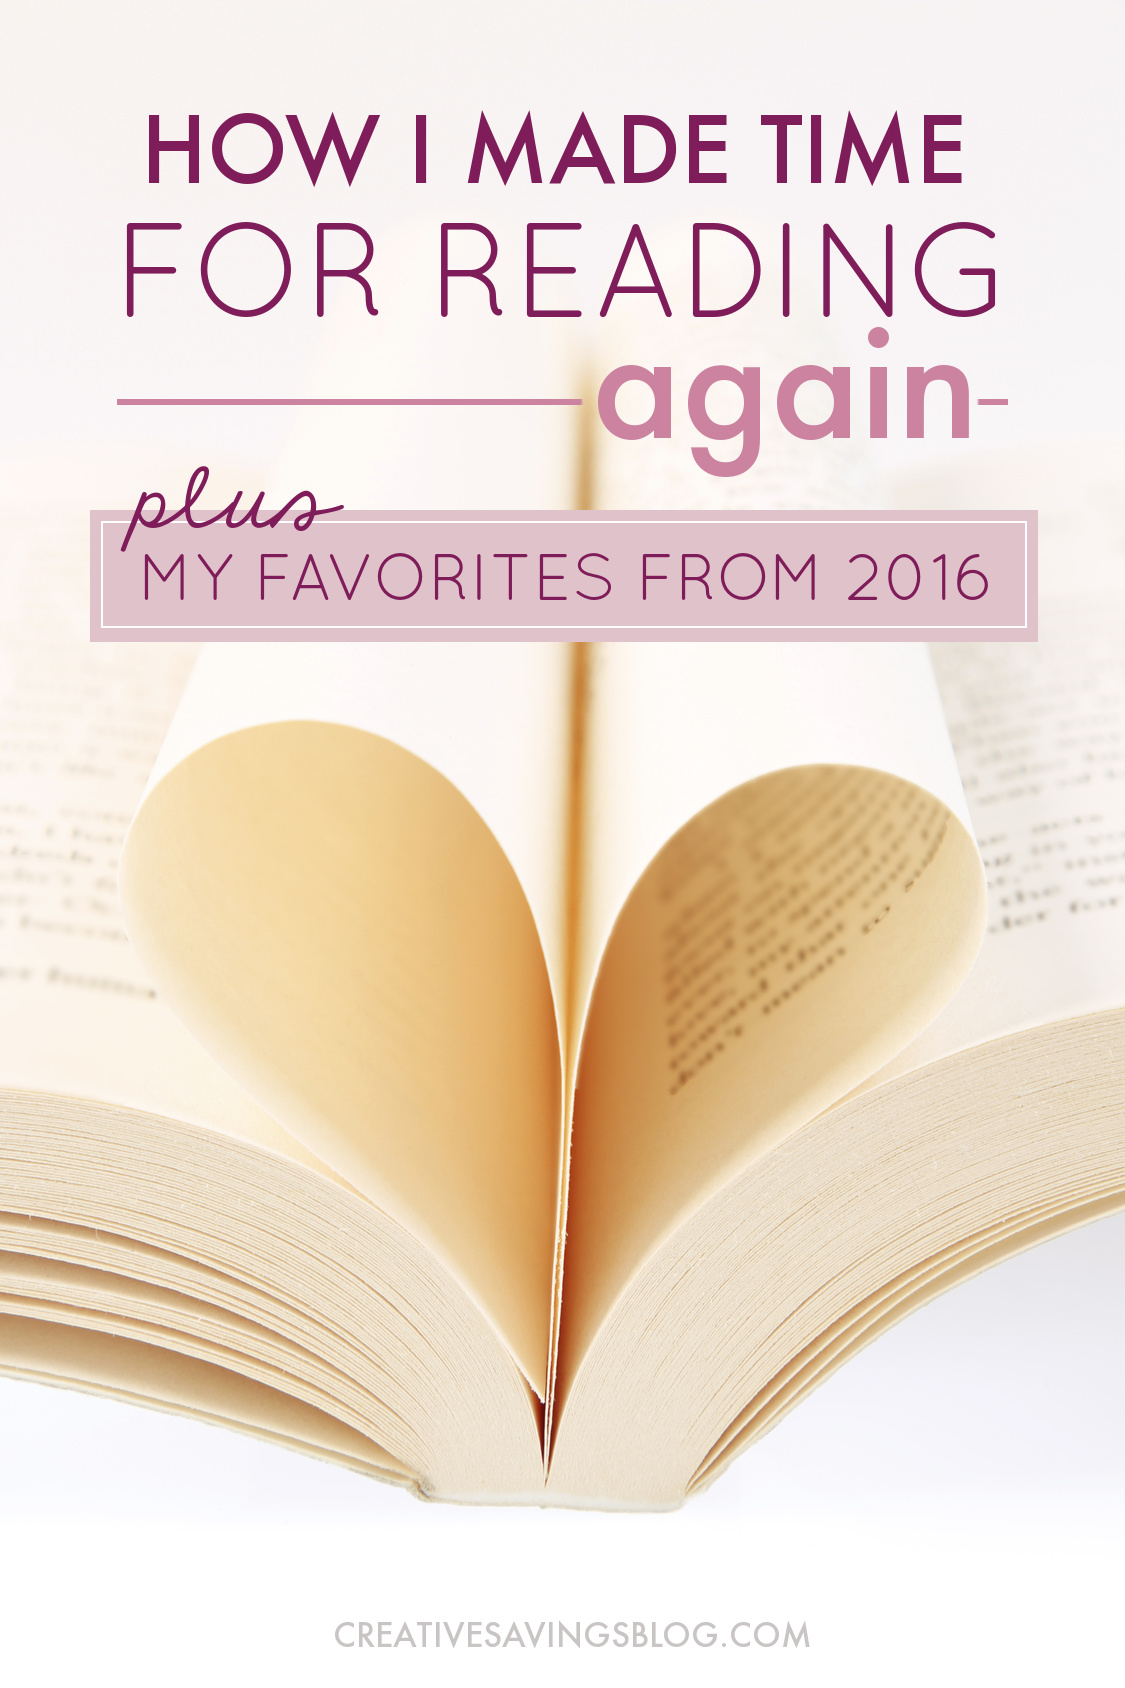 If you're frustrated because you don't have much {if any} time to read, I've got three practical solutions to help make reading a priority in your life again. Plus, I'm sharing my FAVORITE books from 2016 to help jumpstart your list!